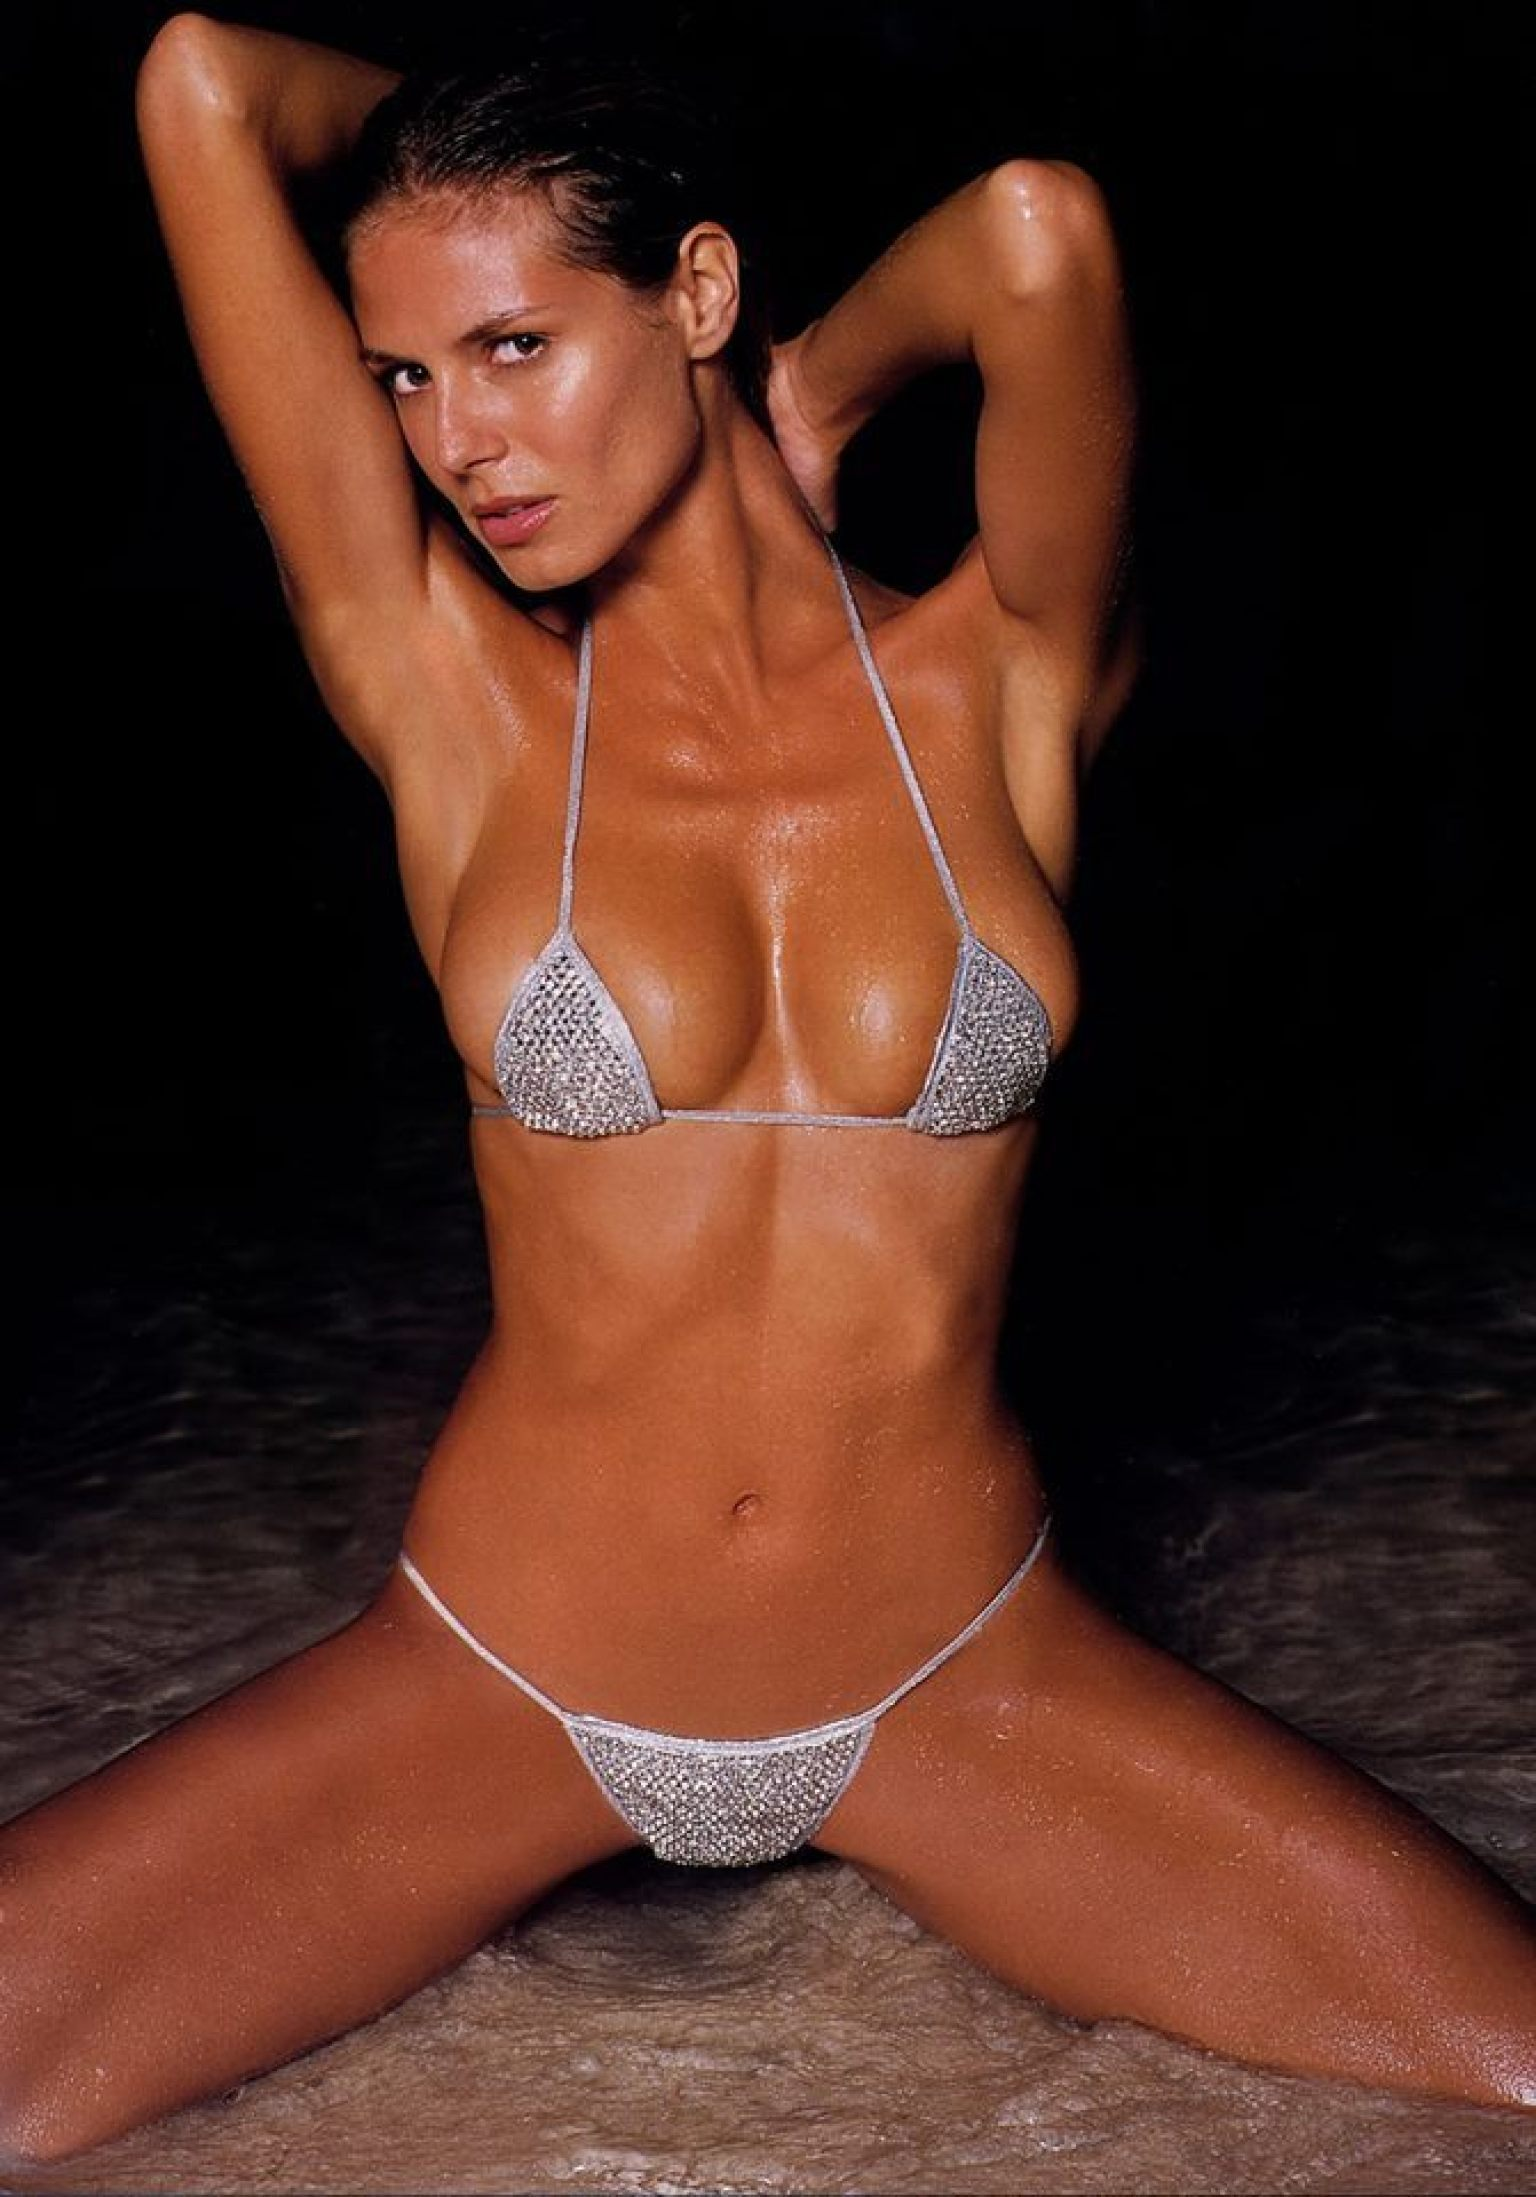 Heidi Klum Hot in Bikini